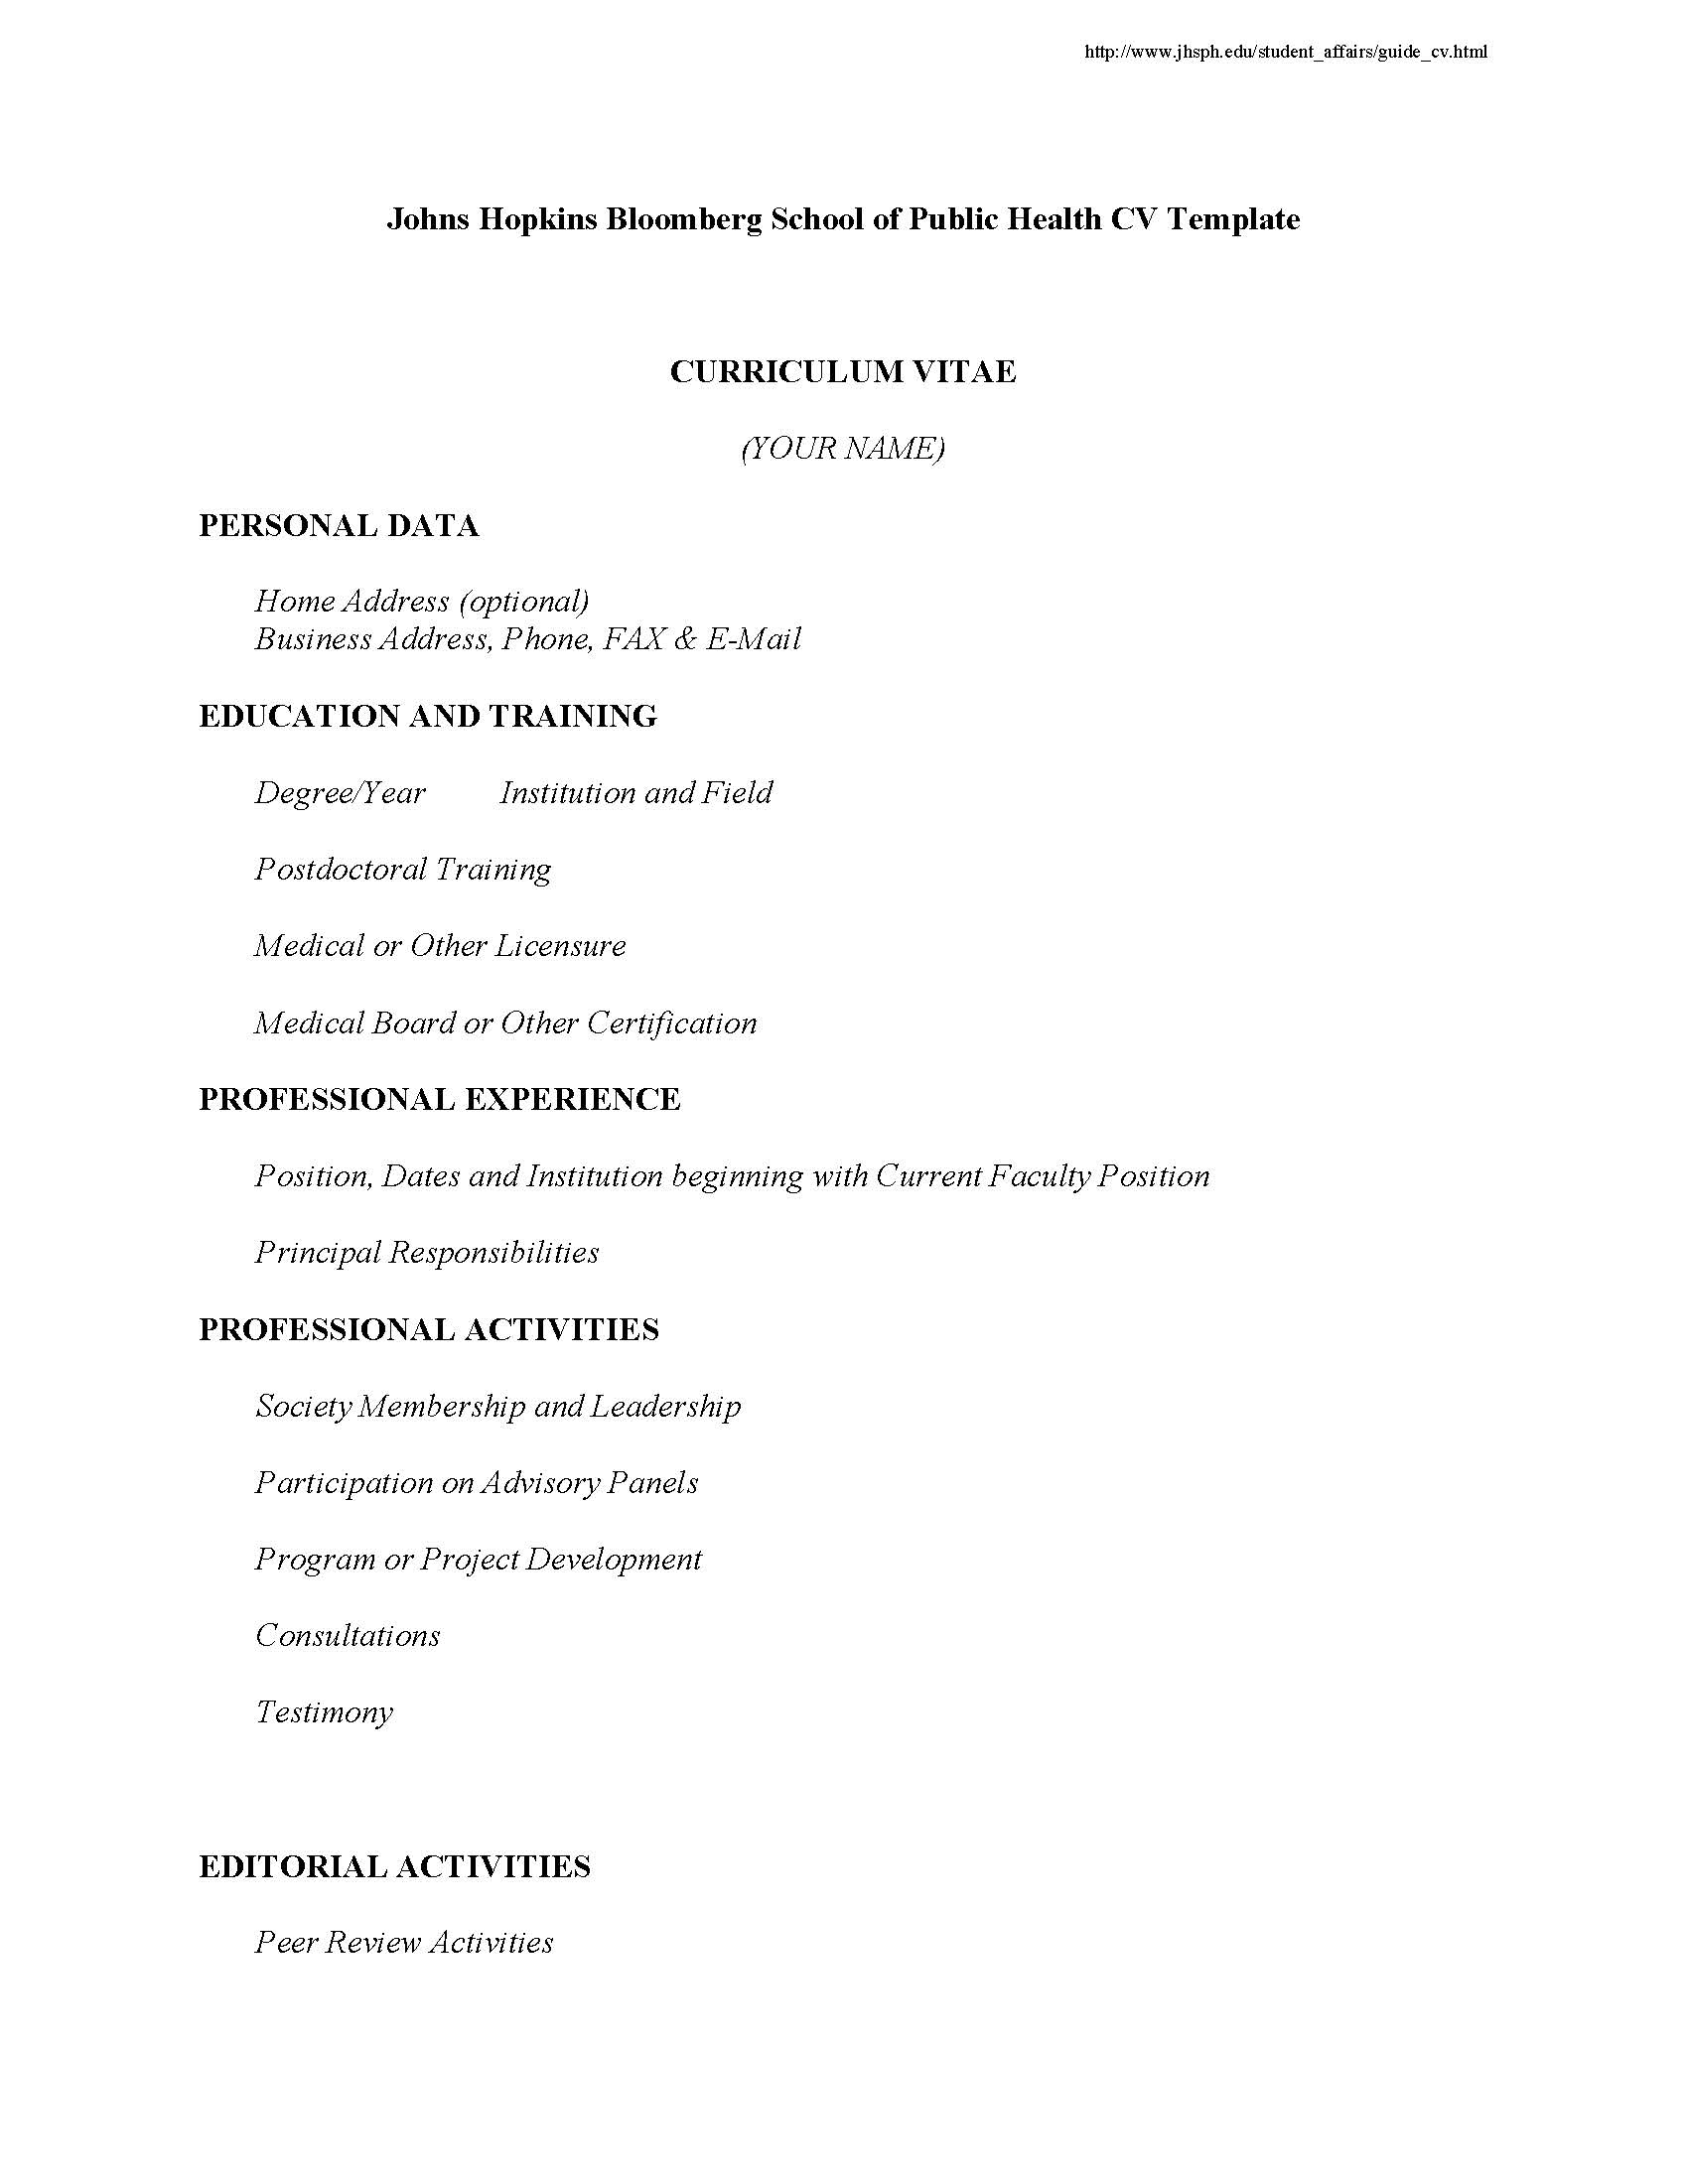 Resume Samples Templates | Resumes And Cvs Career Resources For Students Career Services